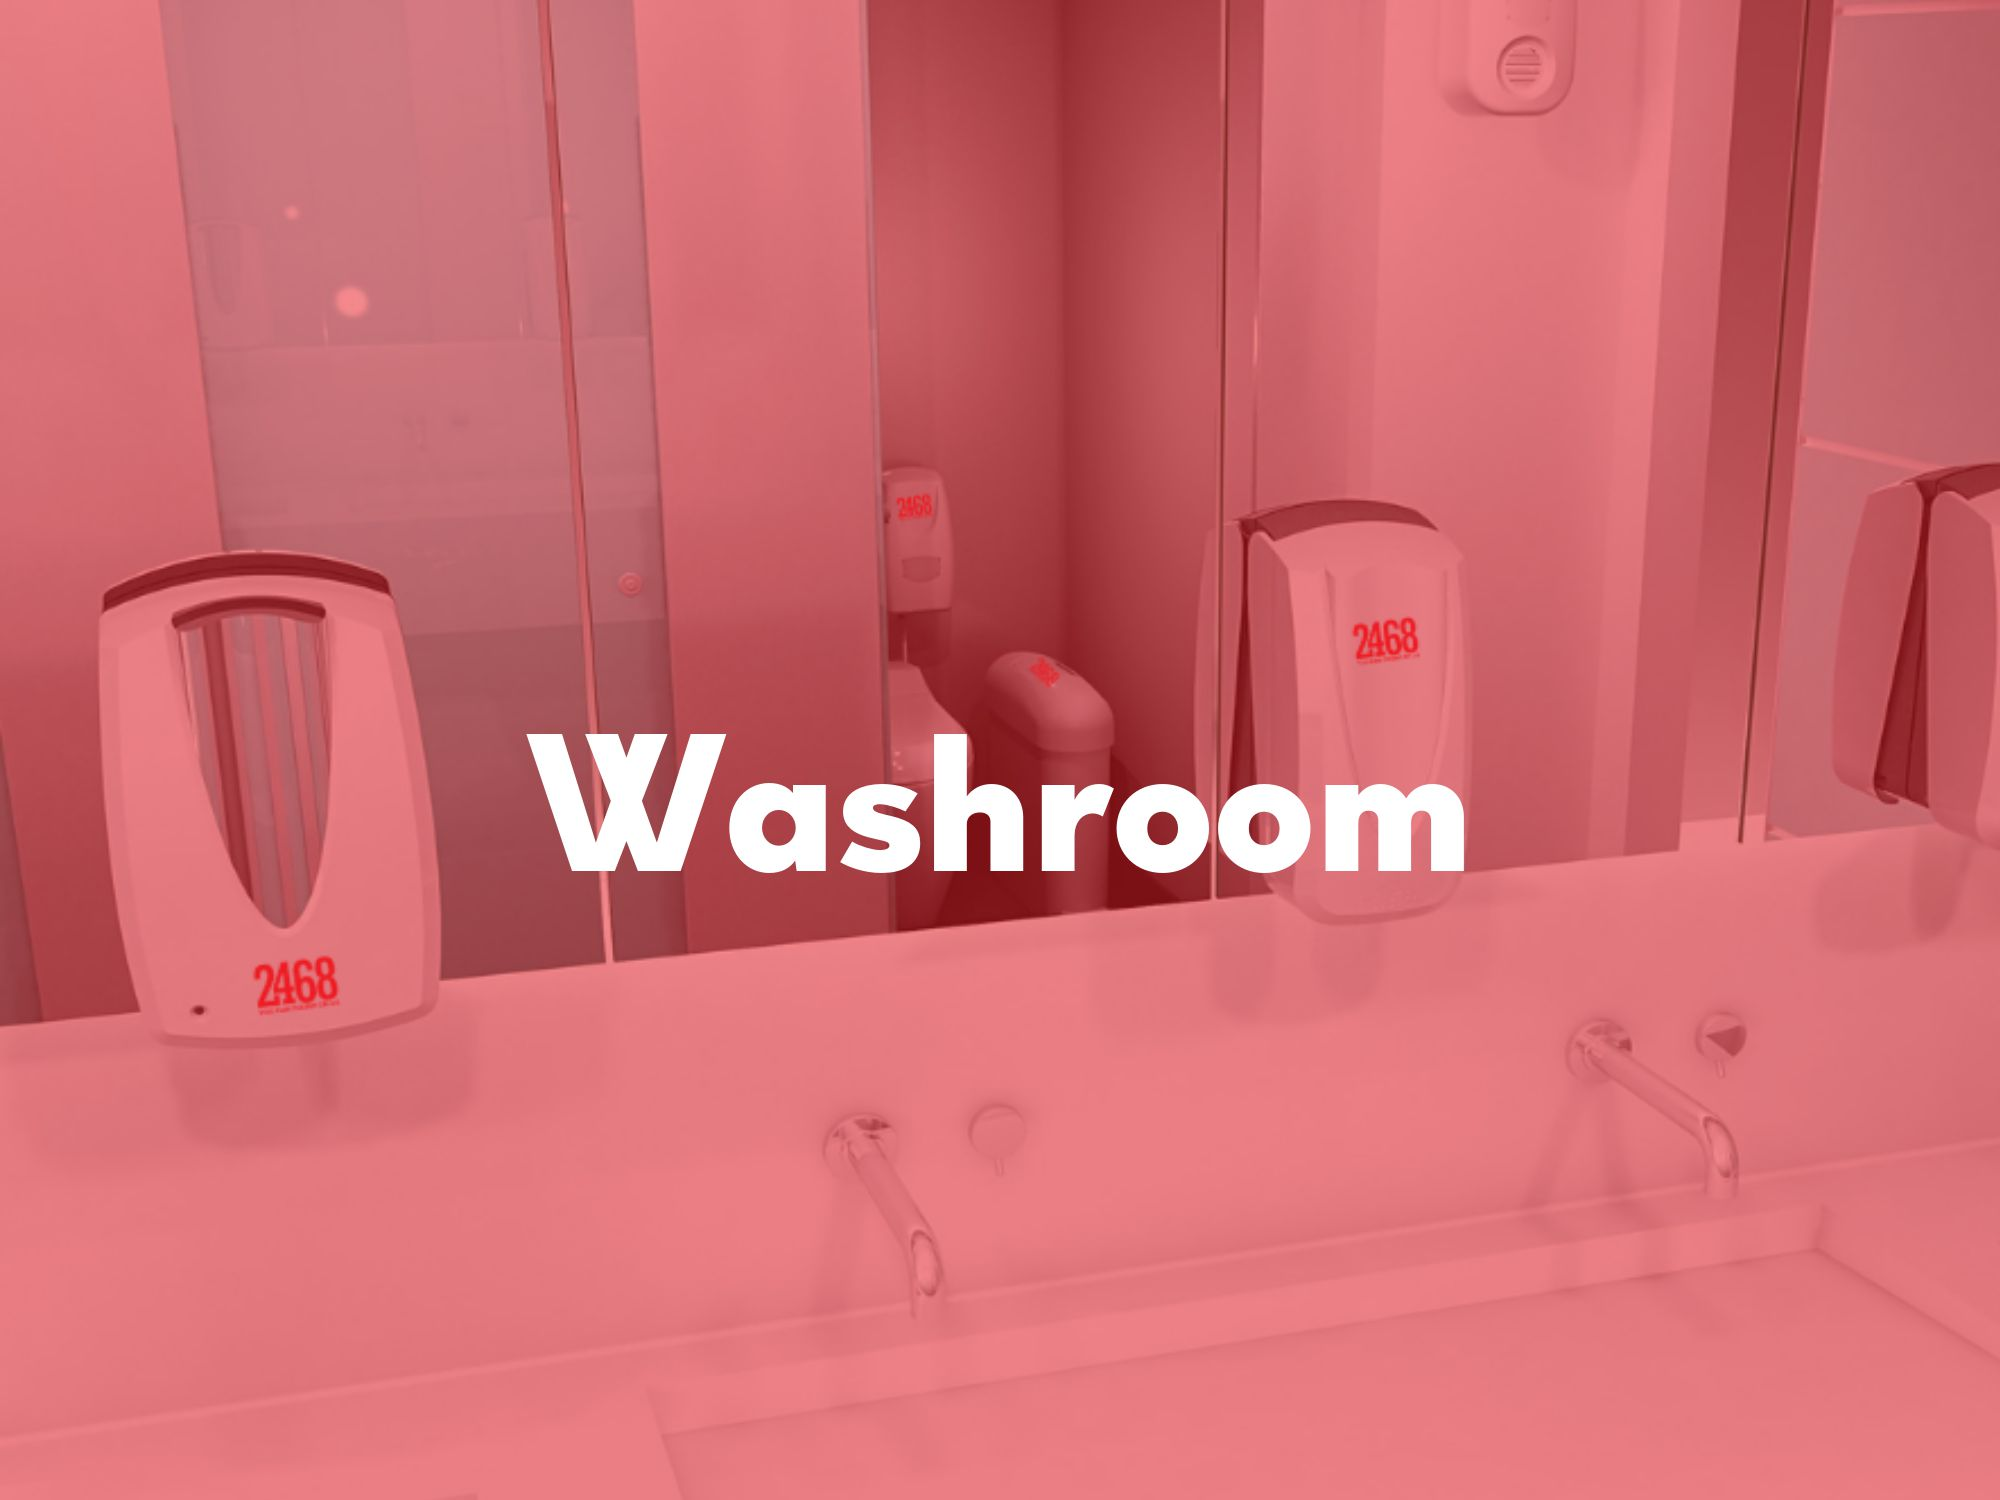 Washrooms which offer a welcoming space to recharge, refresh and renew. -